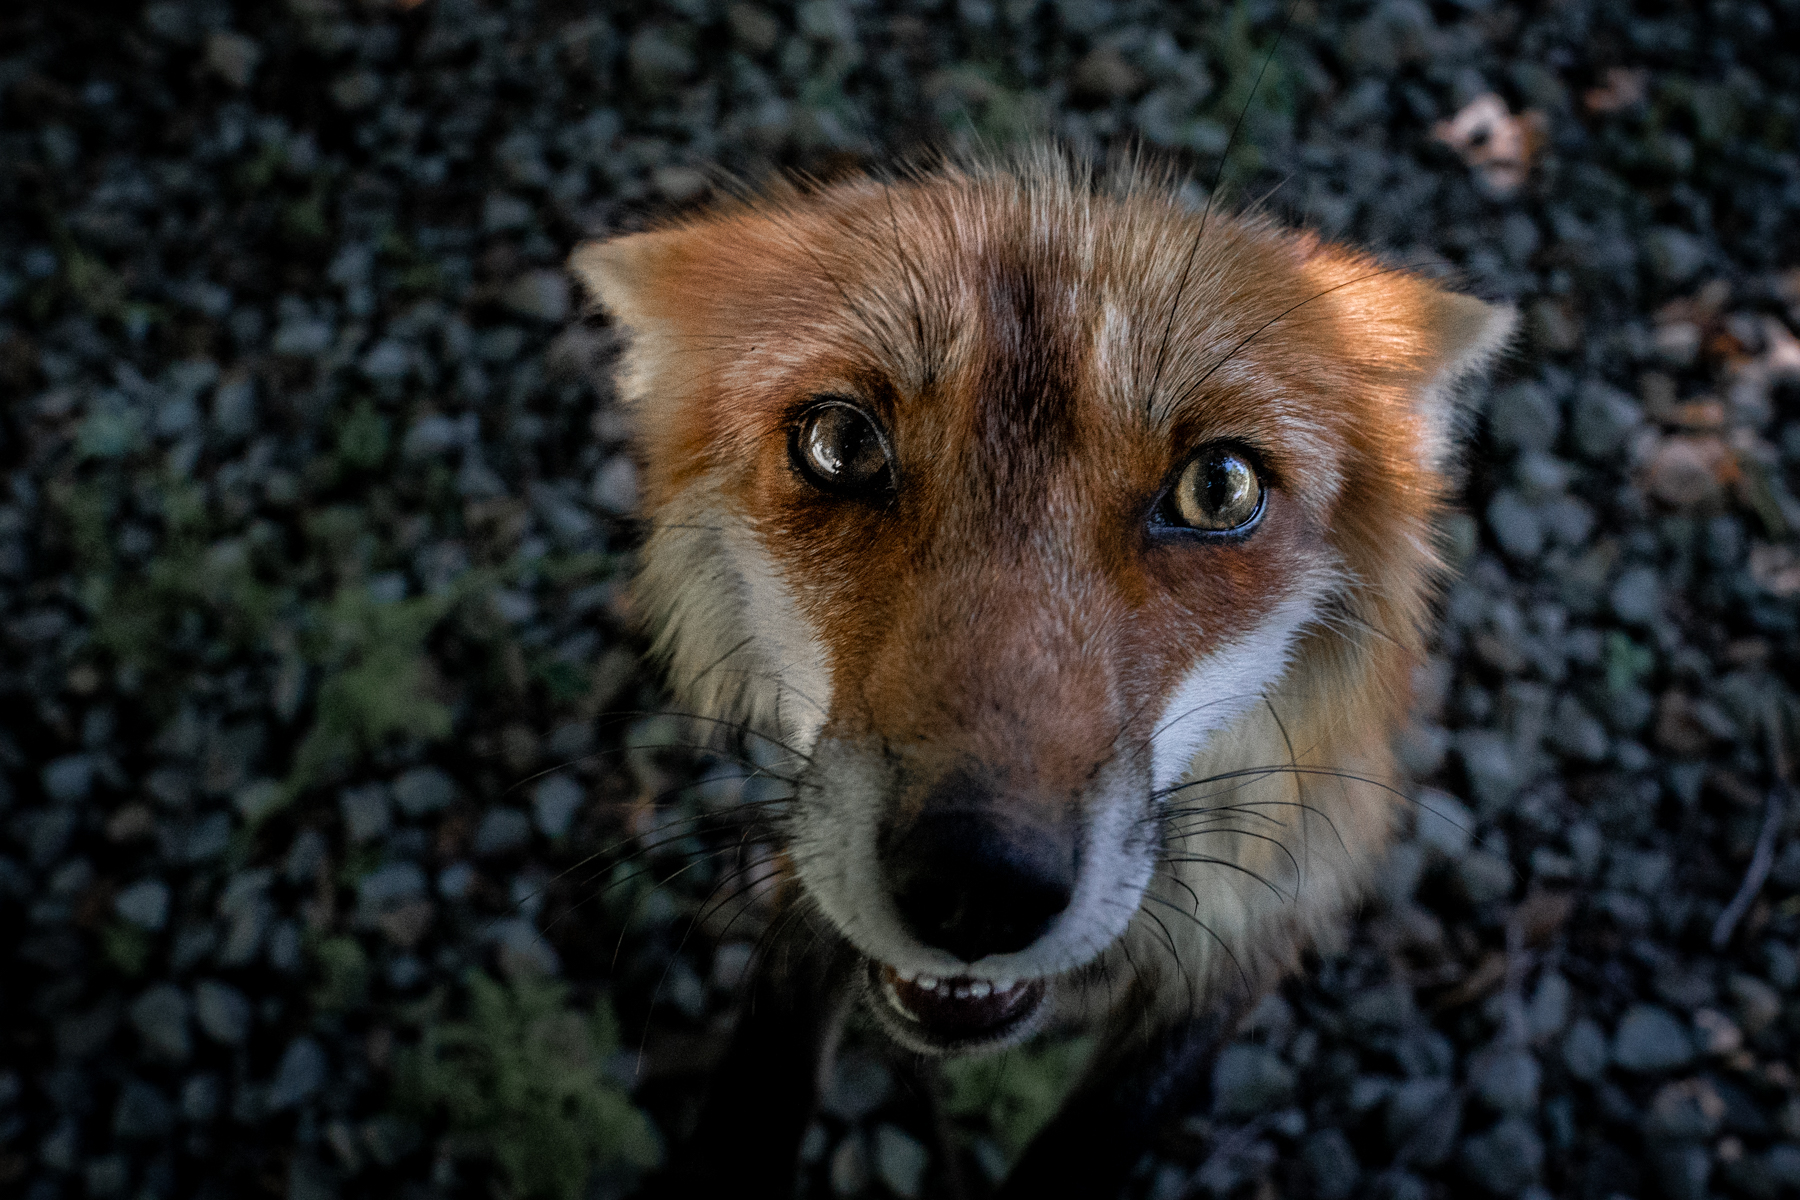 A red fox named Queen Dixie looks up in a bid for treats. The foxes know that the volunteers keep dried chicken jerky on hand, and the animals sometimes beg for them.